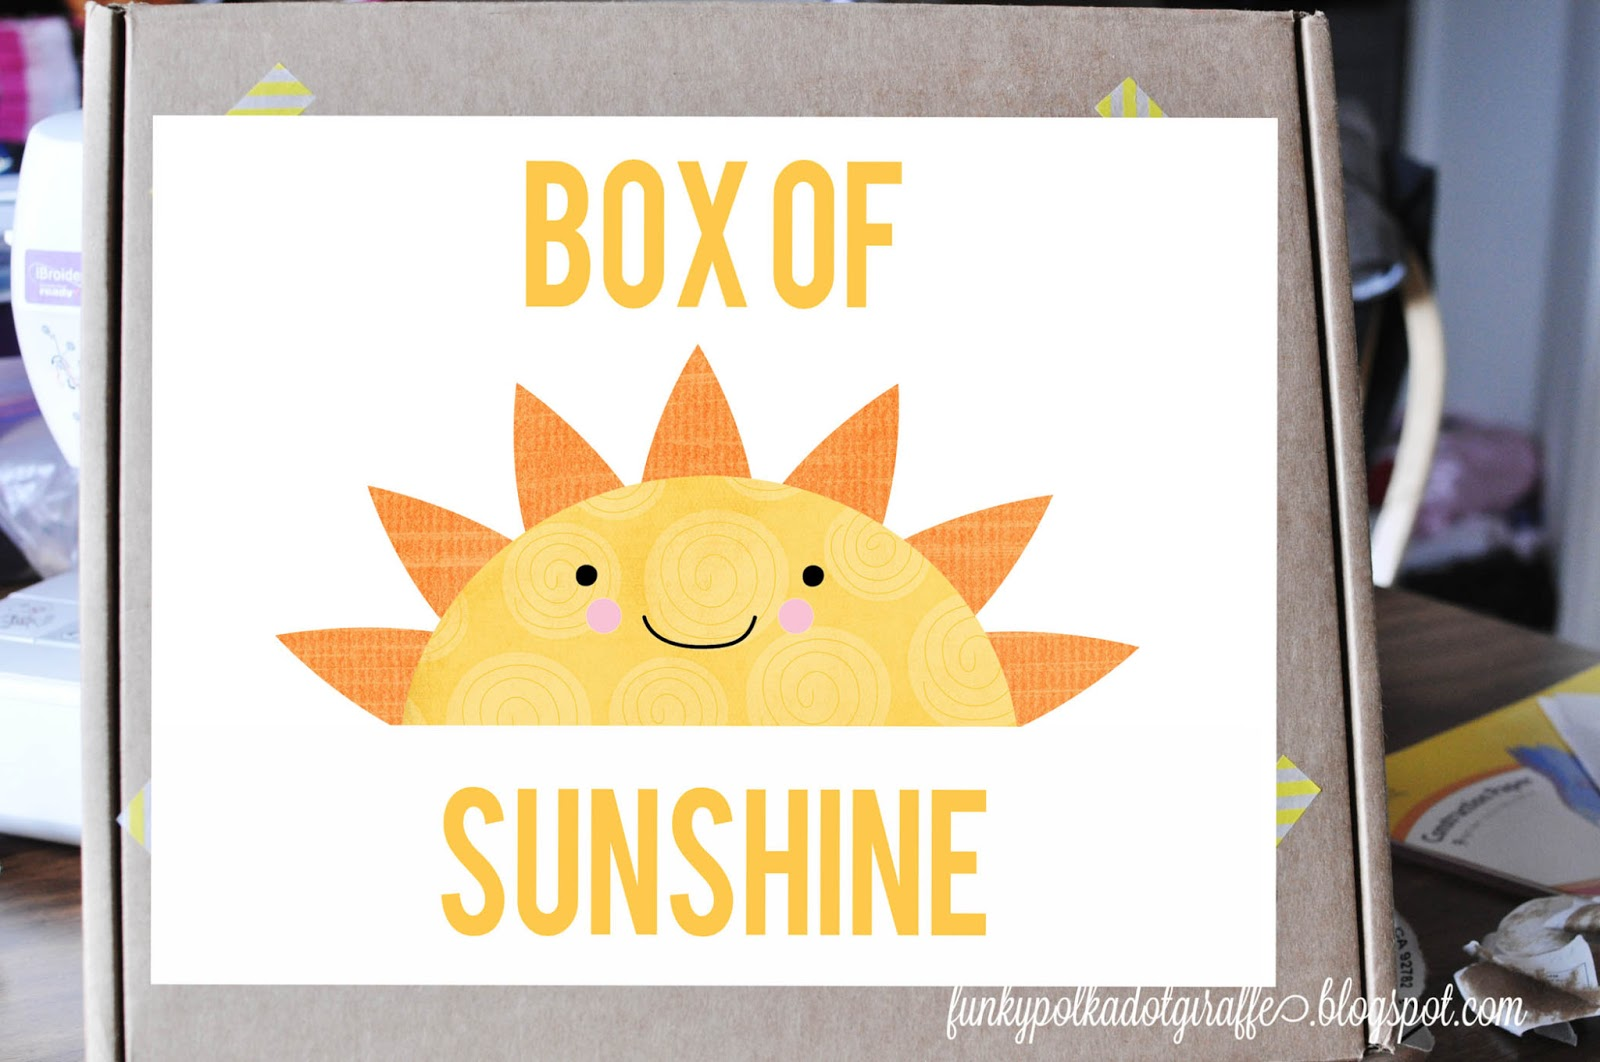 Selective image pertaining to box of sunshine printable